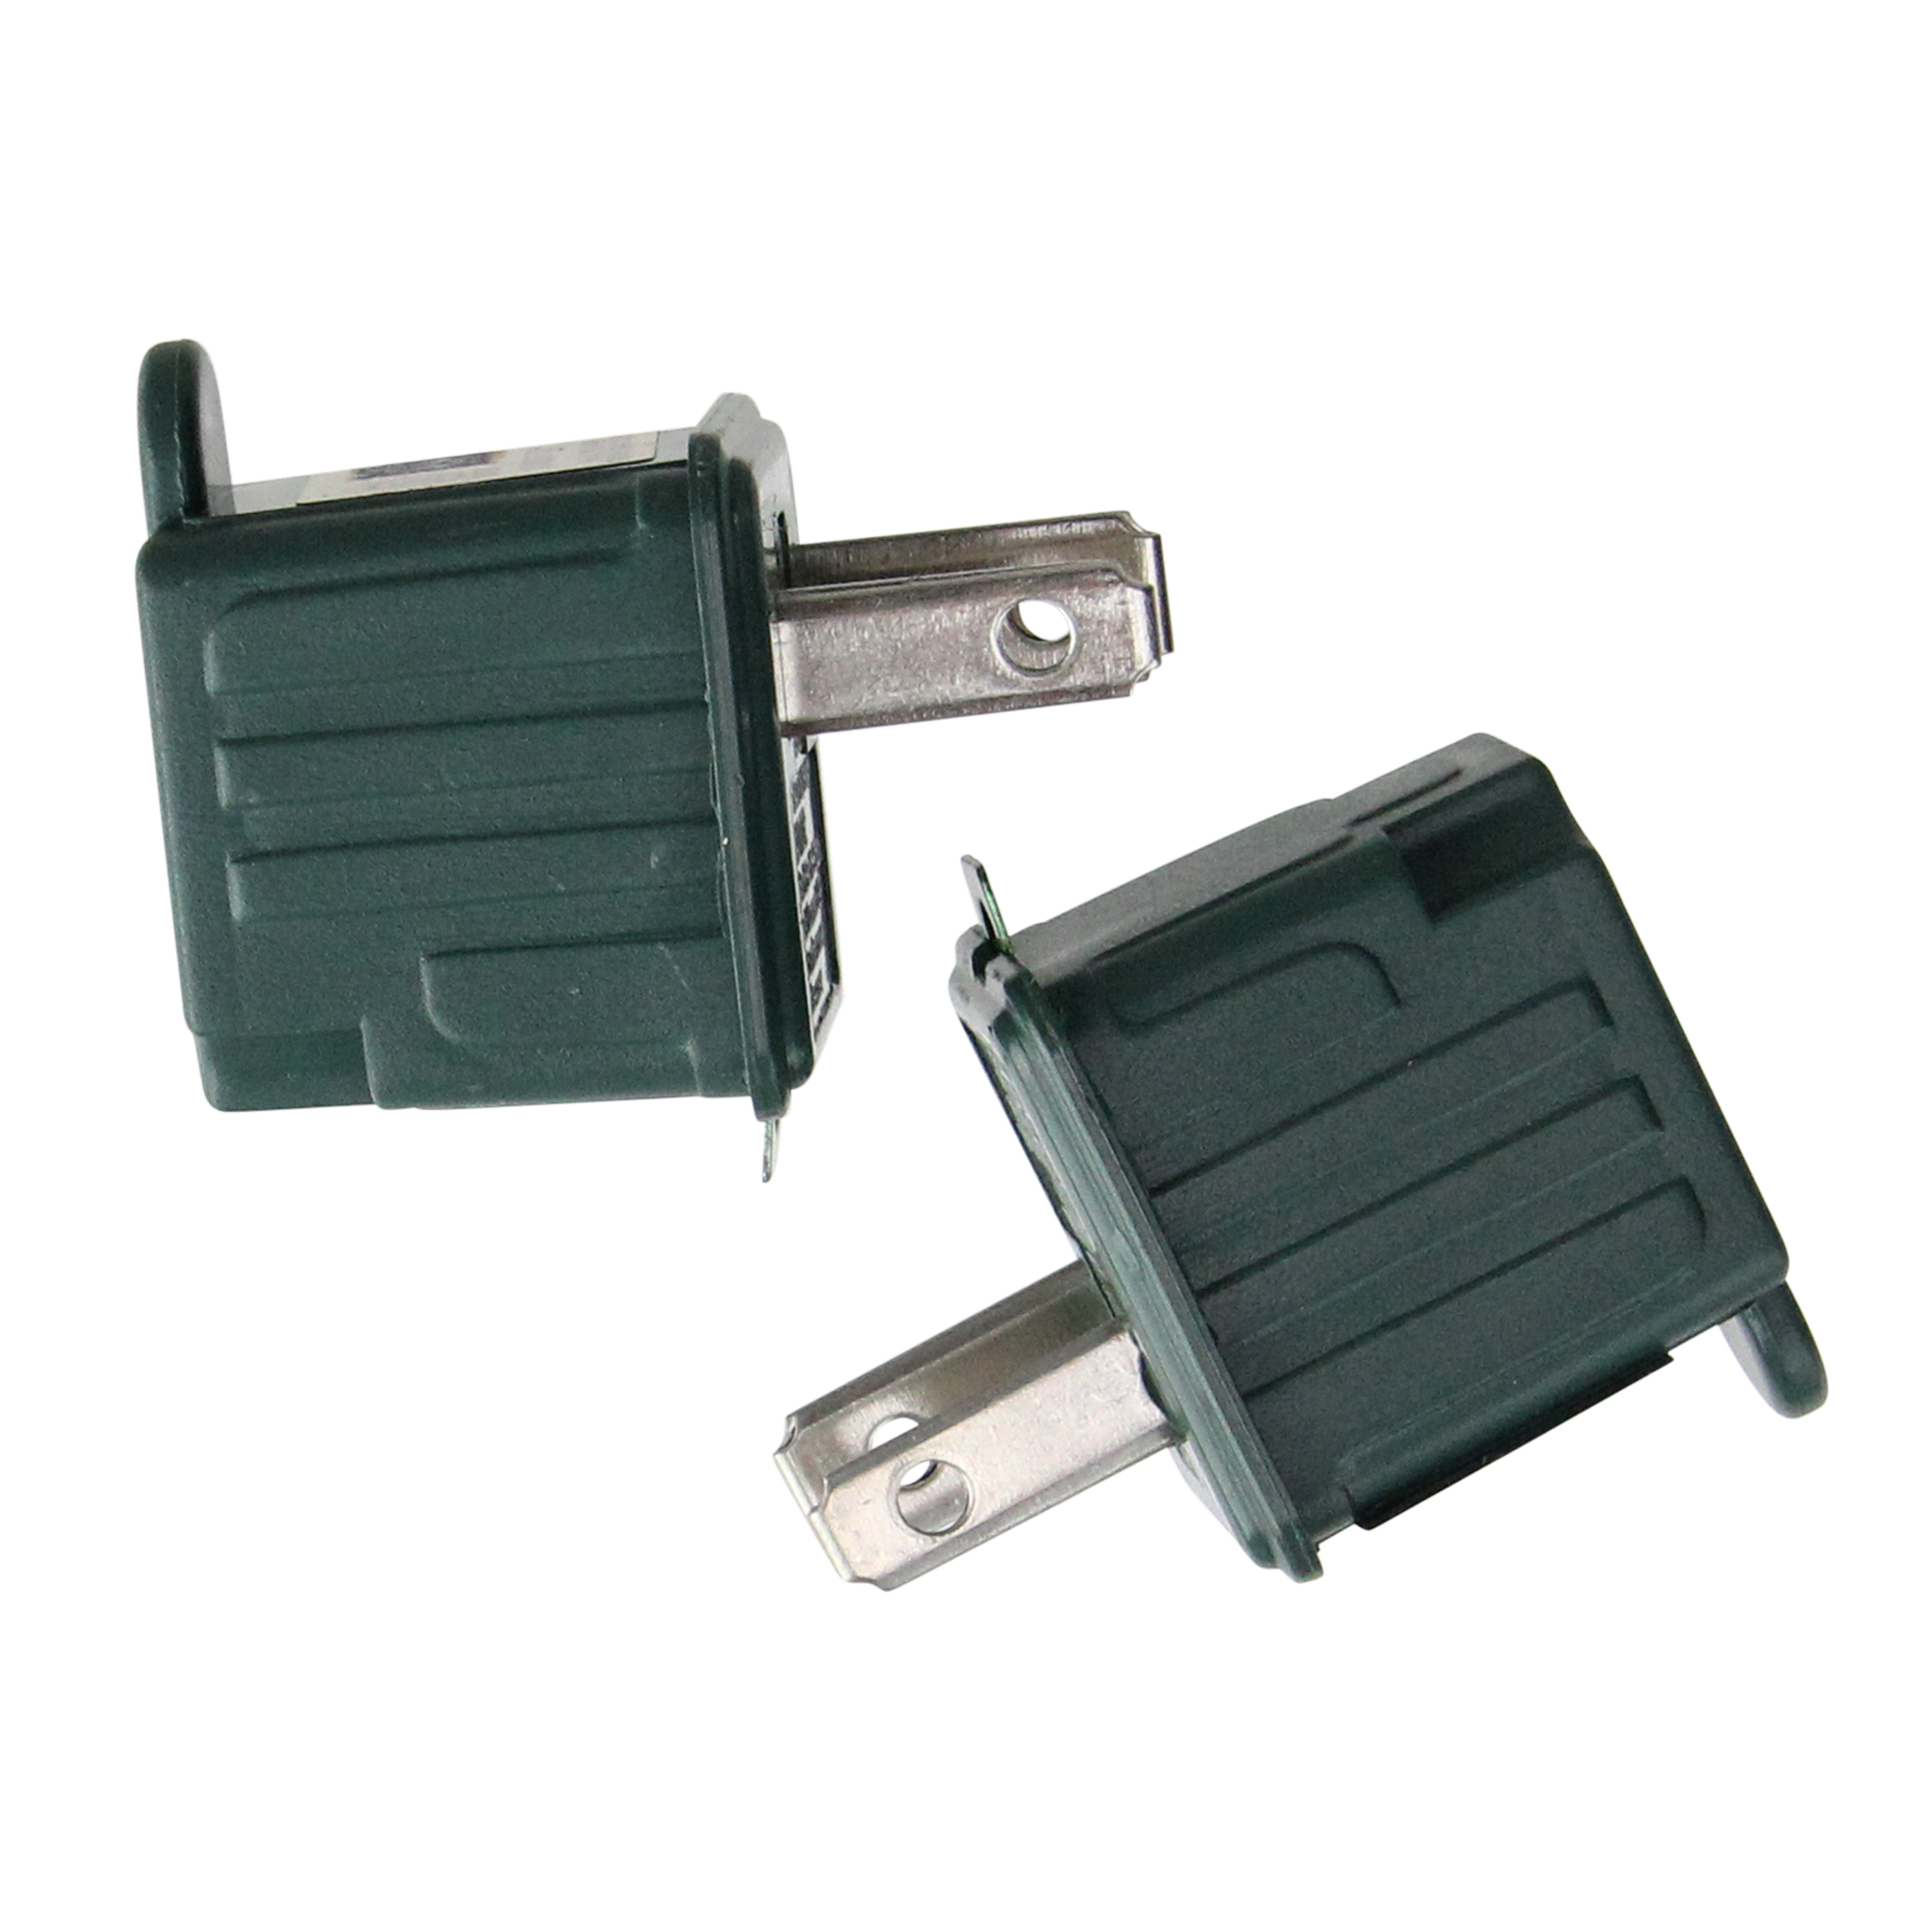 hight resolution of set of 2 stanley green 3 prong to 2 prong outlet adapters 1 75